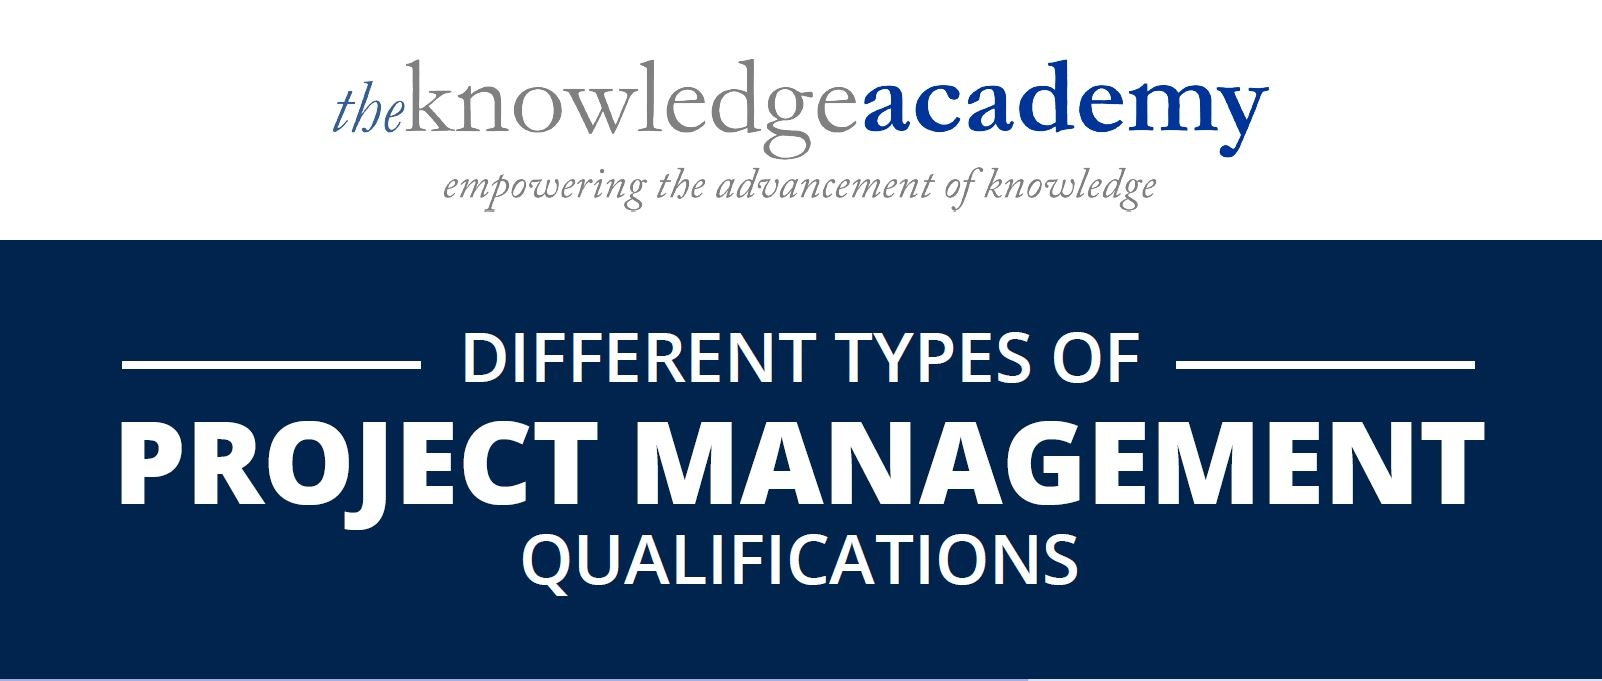 Different Types Of Project Management Qualification The Knowledge